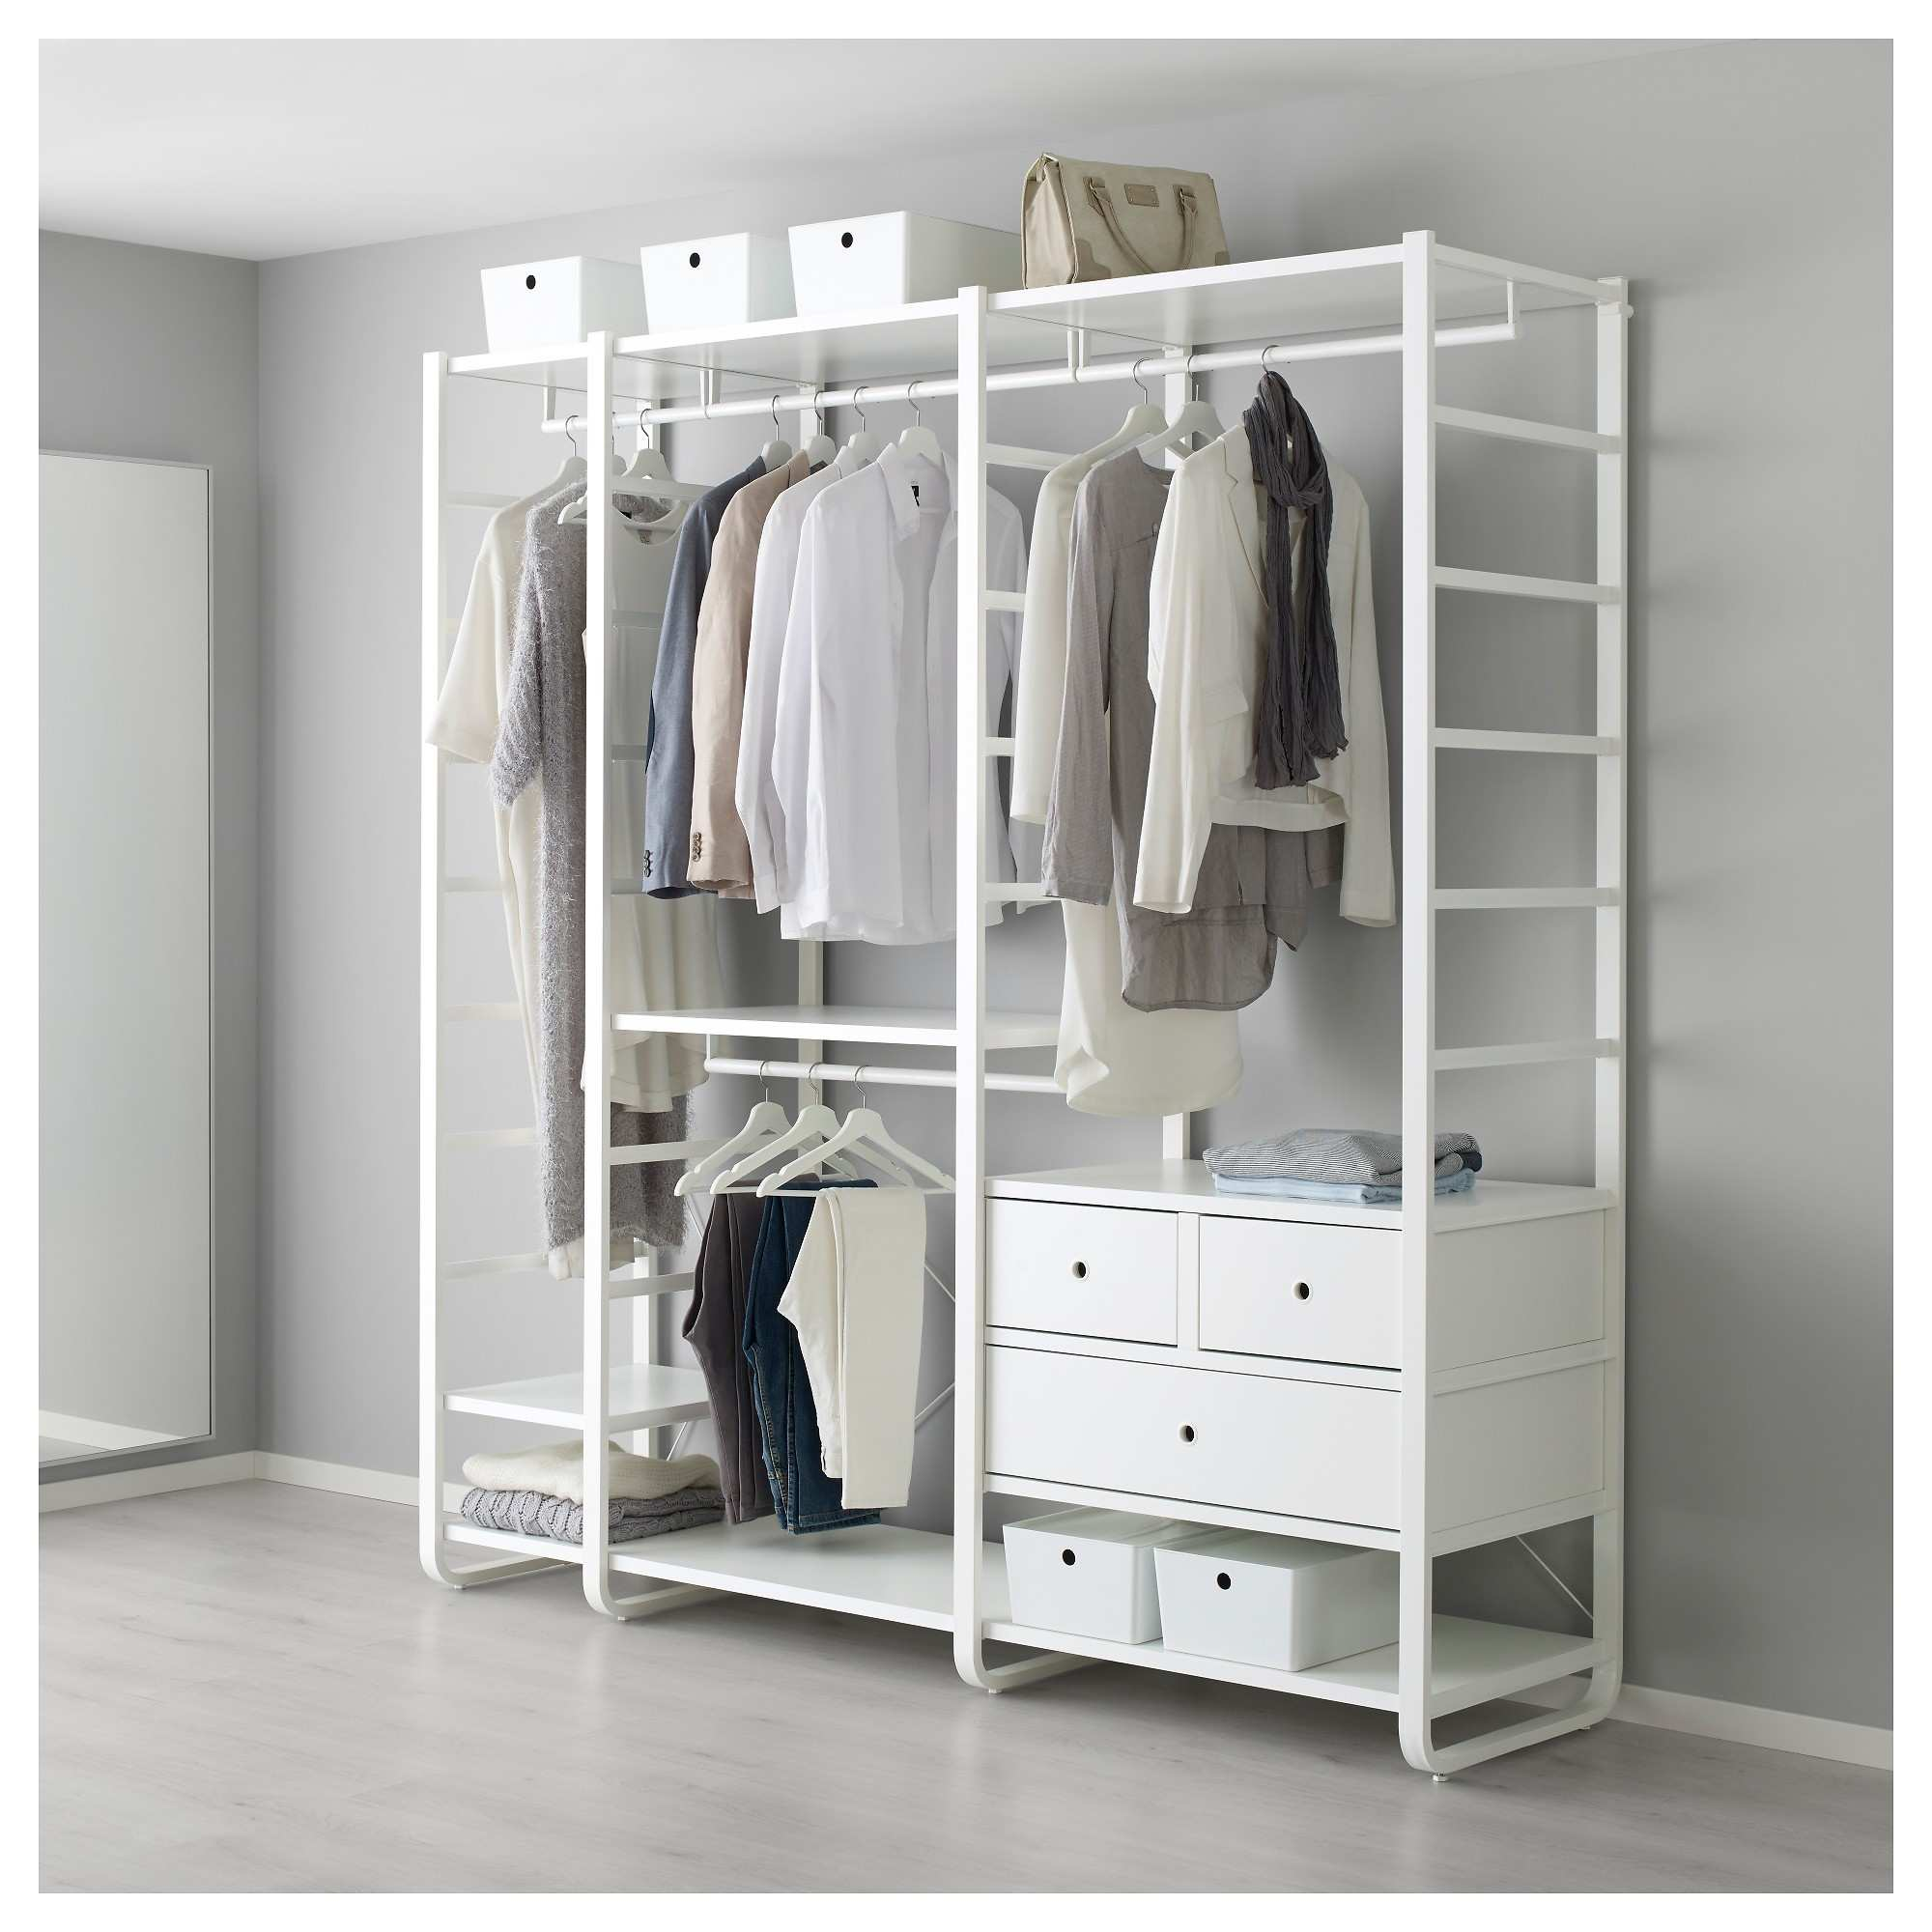 86y Wardrobe Ikea Tidy By Ikeai 0d Instructions Storage